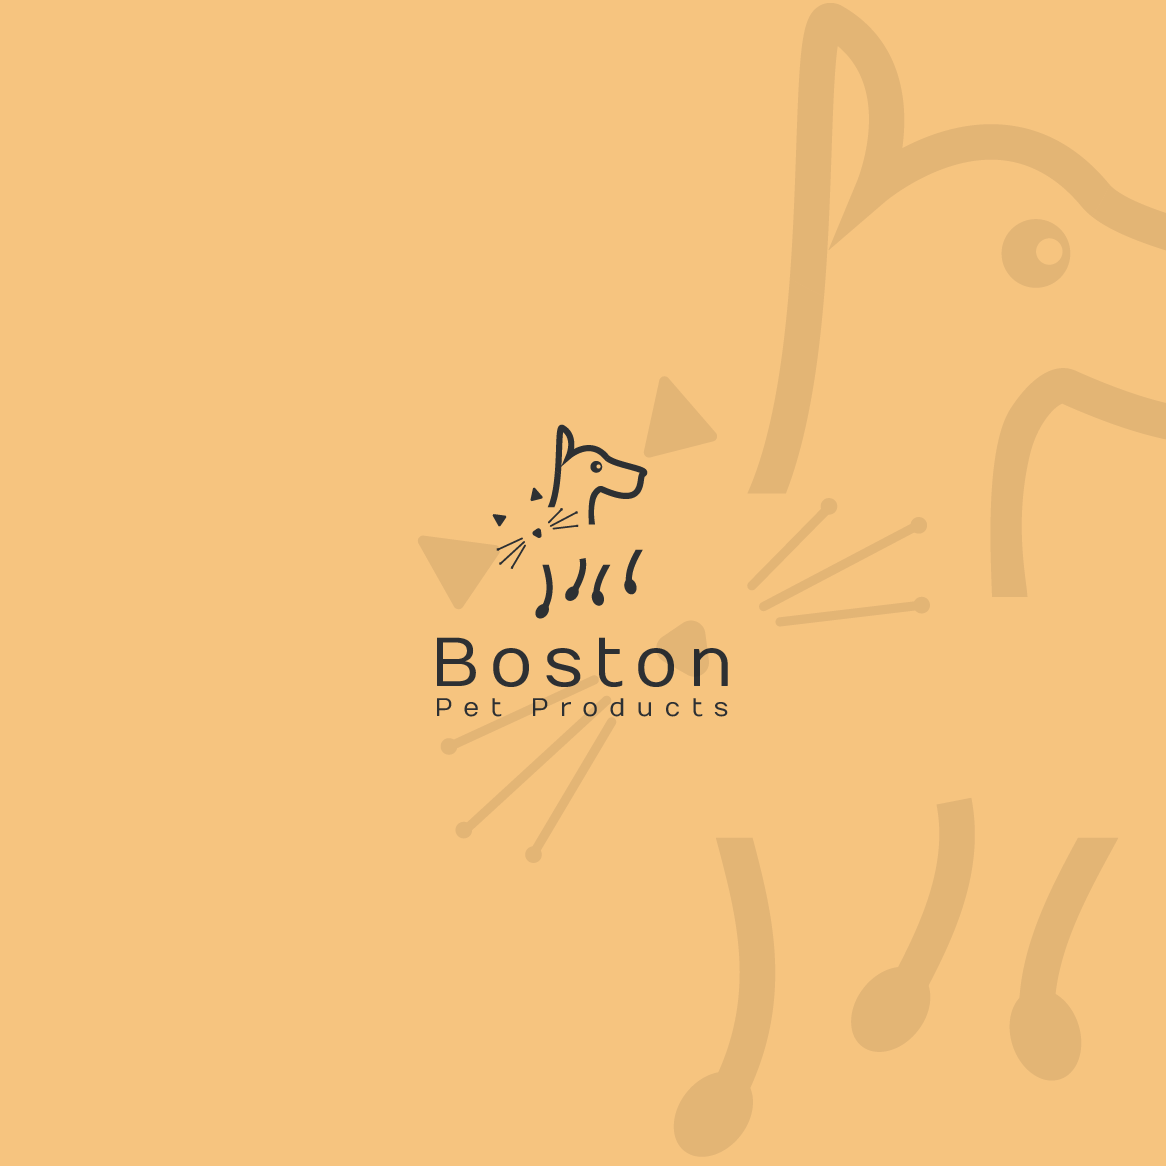 PET PRODUCT LOGO